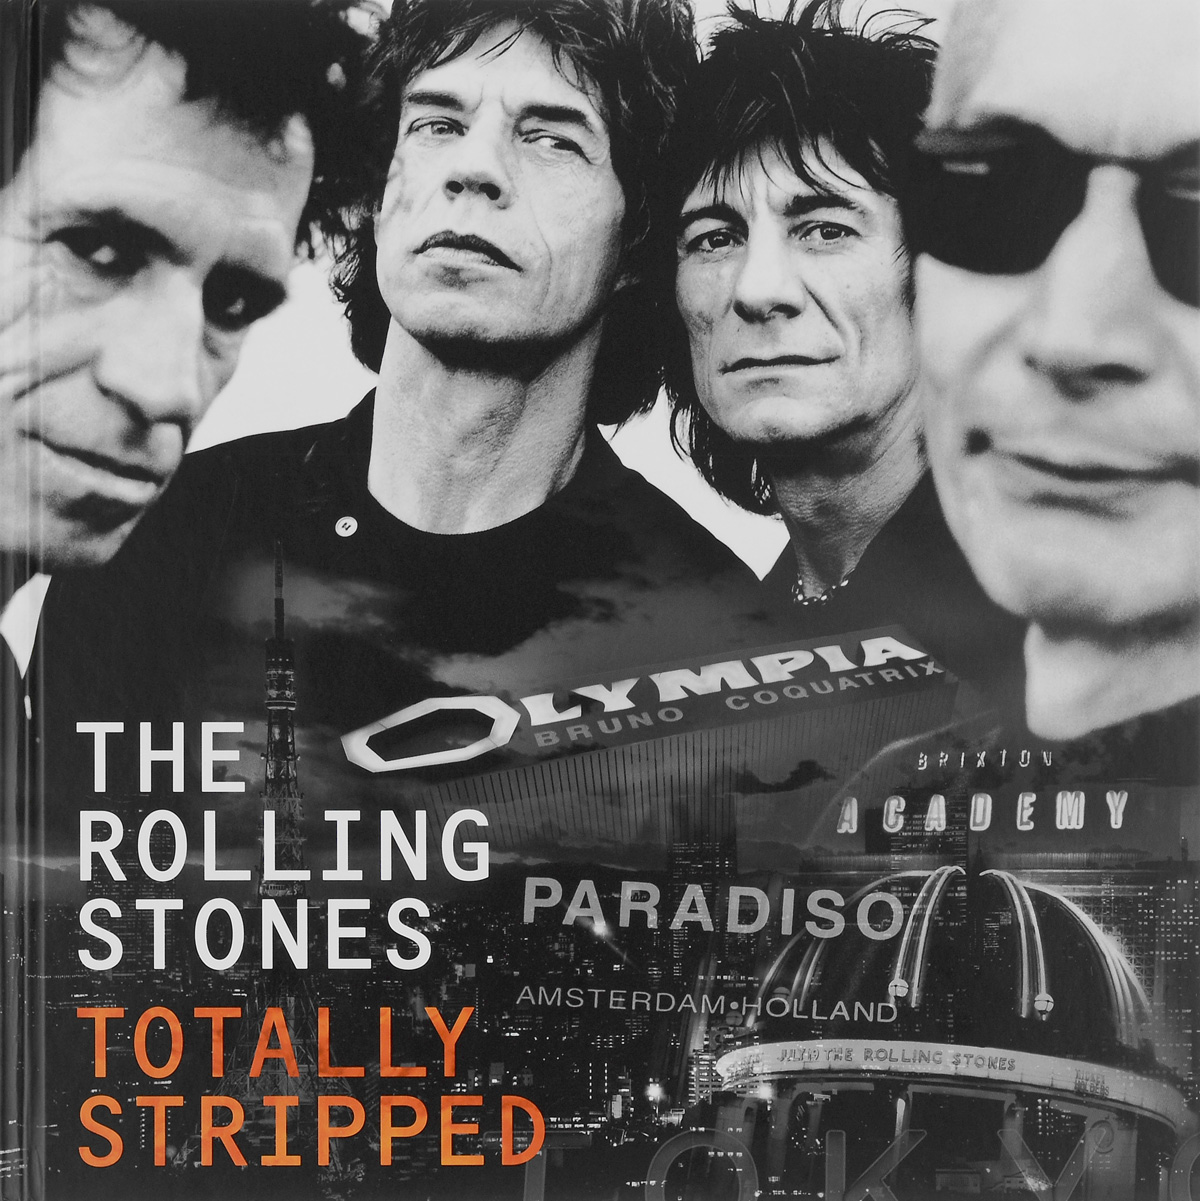 The Rolling Stones The Rolling Stones. The Totally Stripped. Deluxe Edition (CD + 4 DVD) джеймс блант james blunt all the lost souls deluxe edition cd dvd